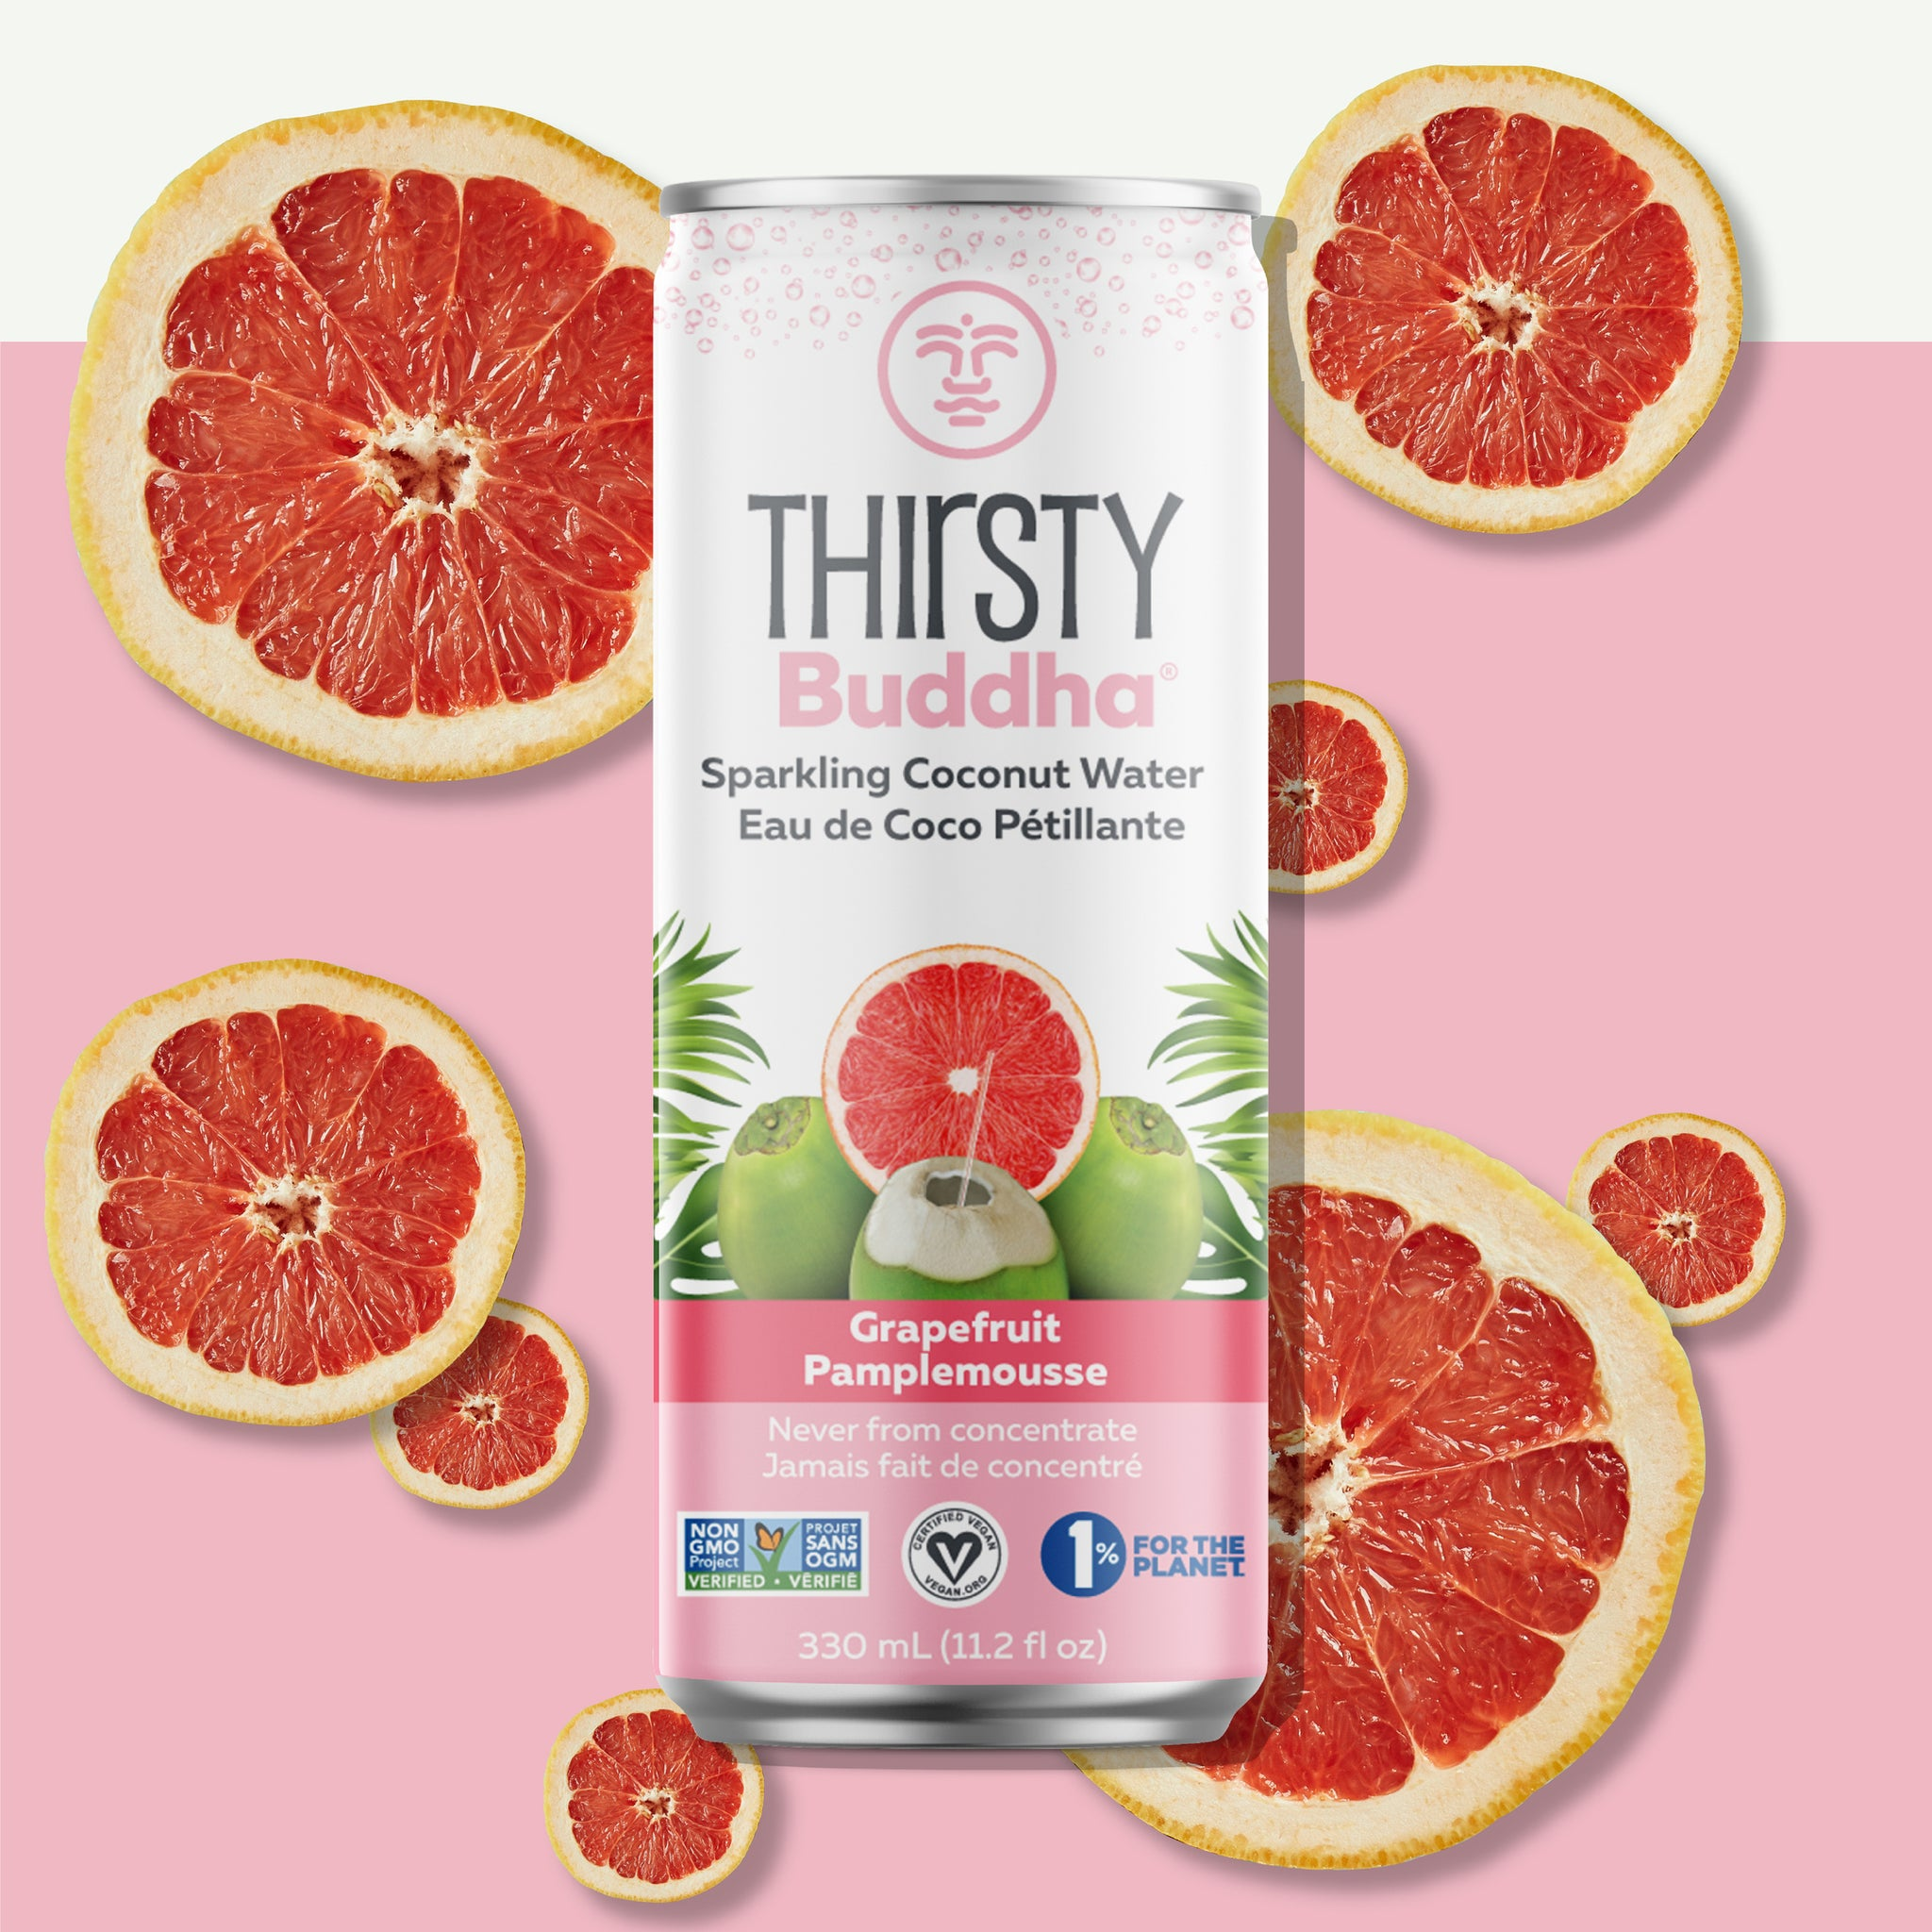 Sparkling Coconut Water with Grapefruit (330ml)